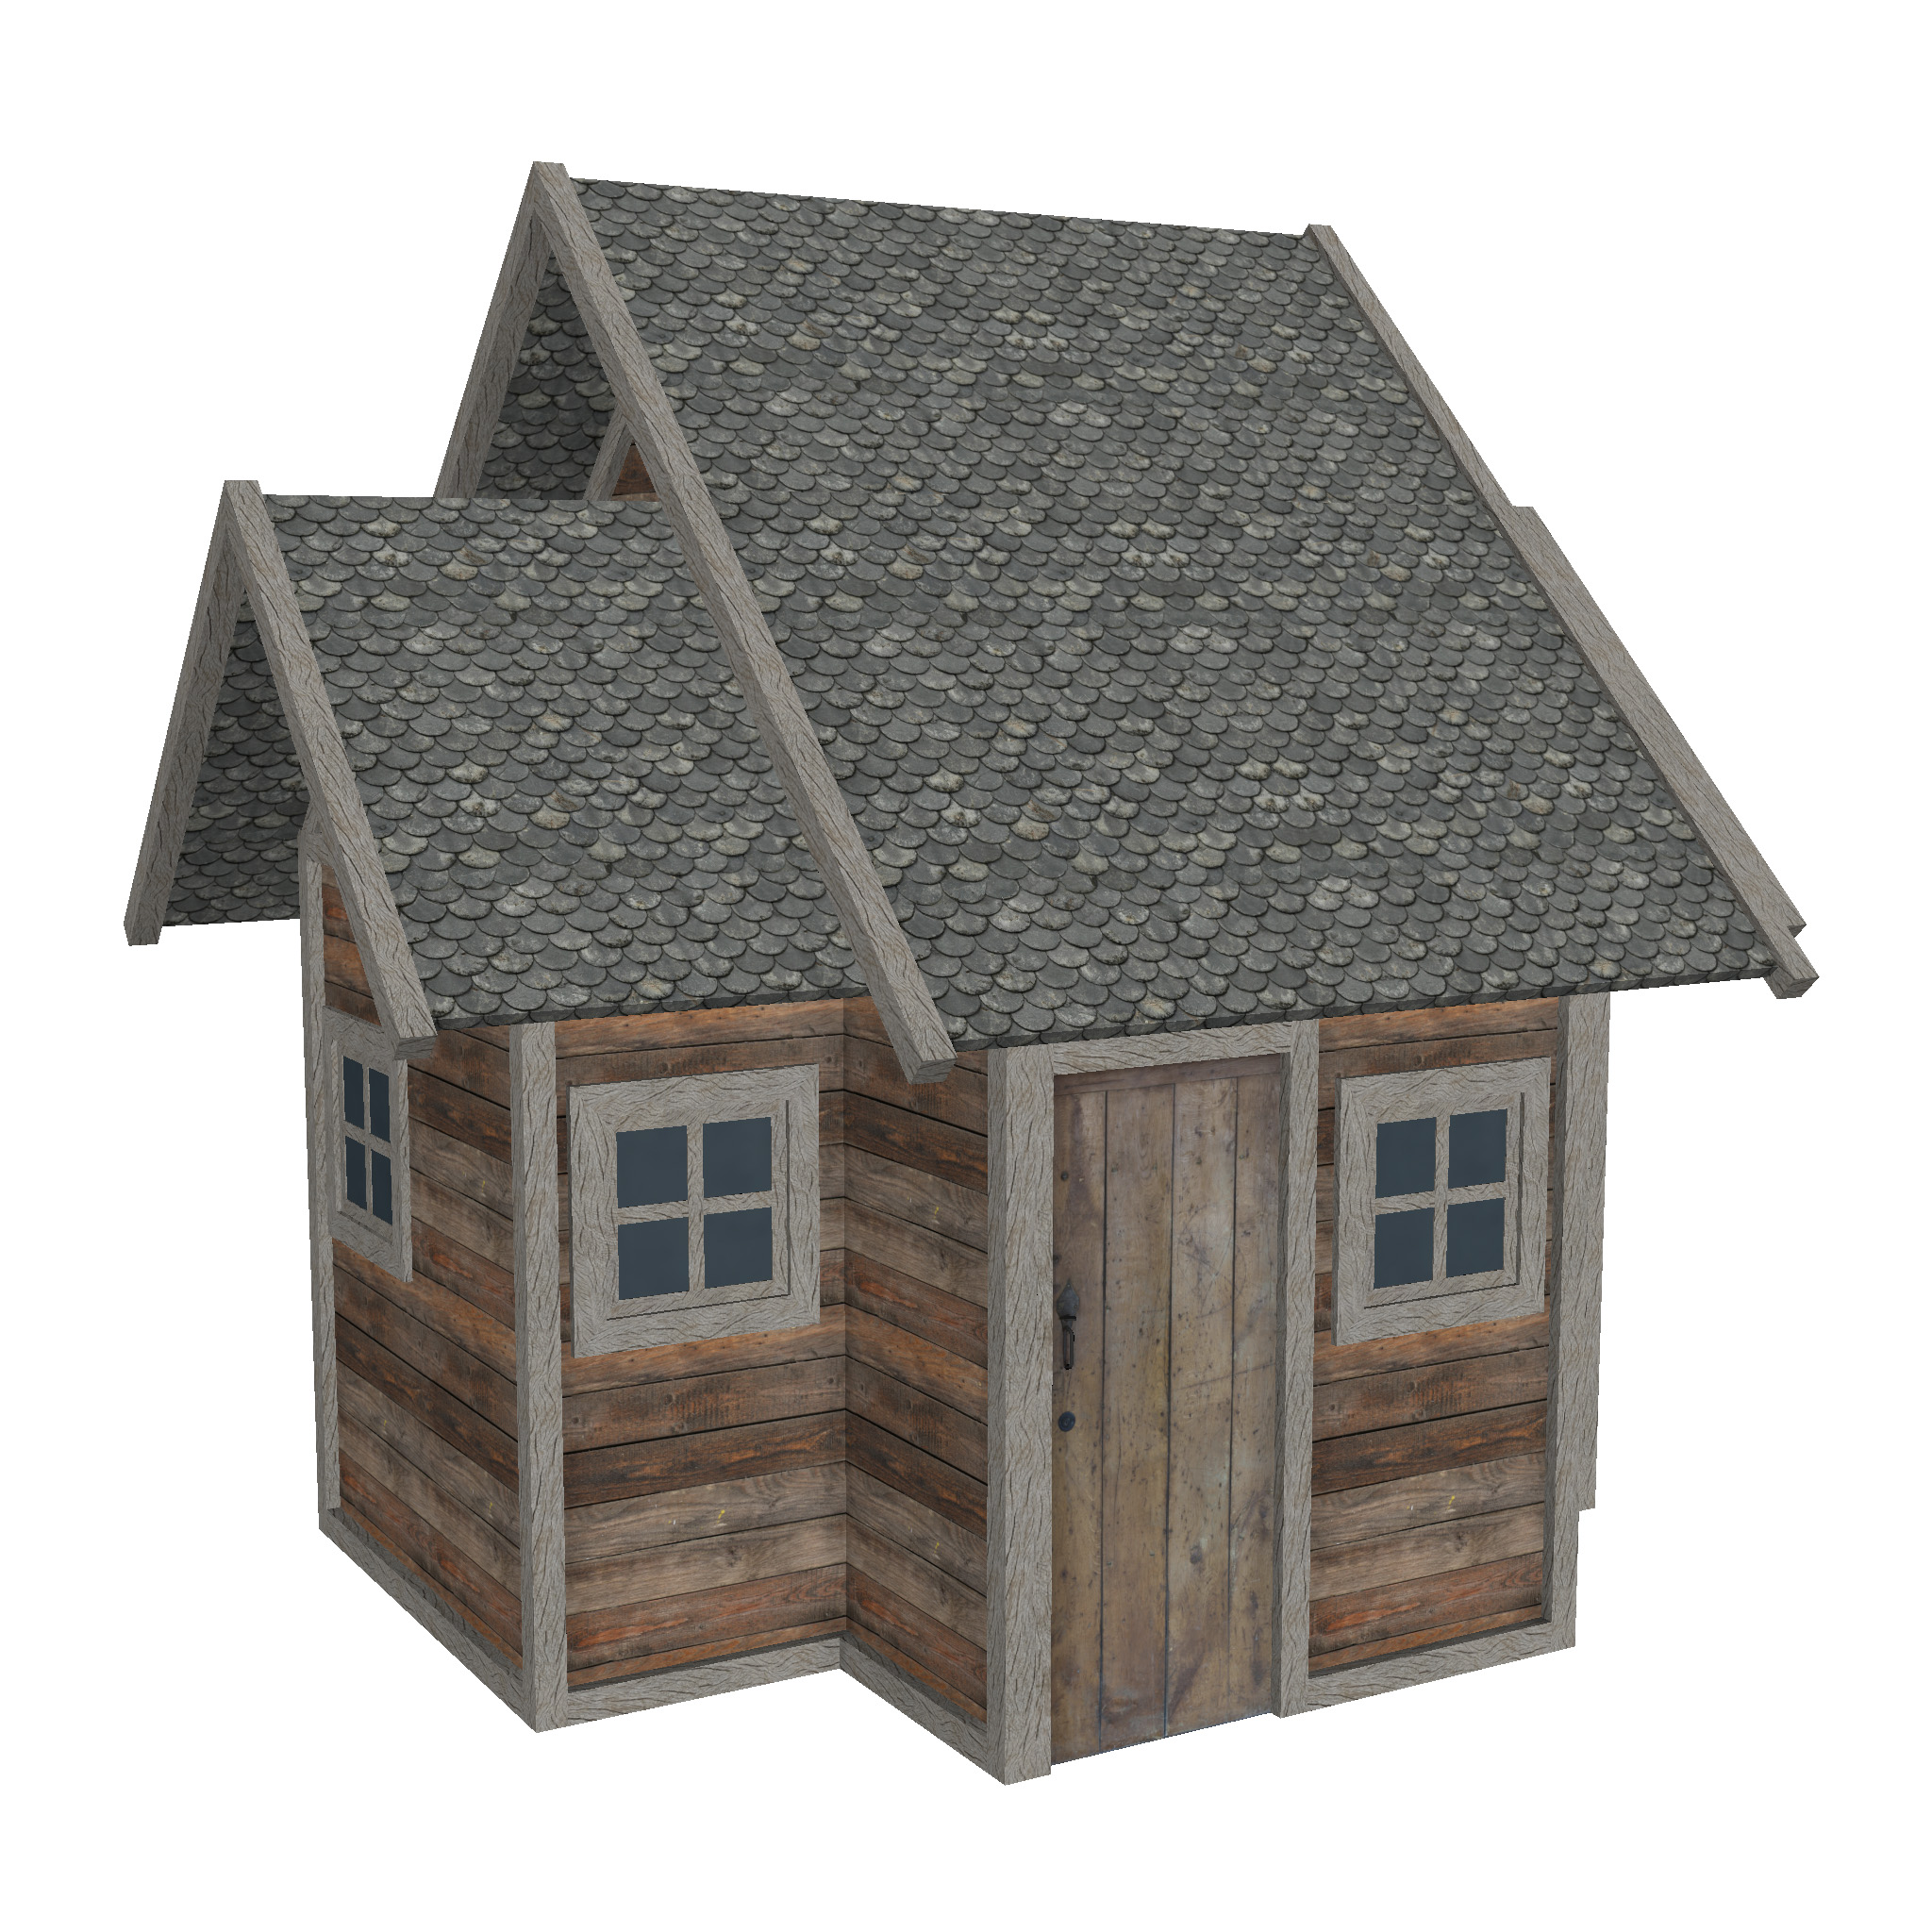 modular wood house set 3d model fbx ma mb 271451